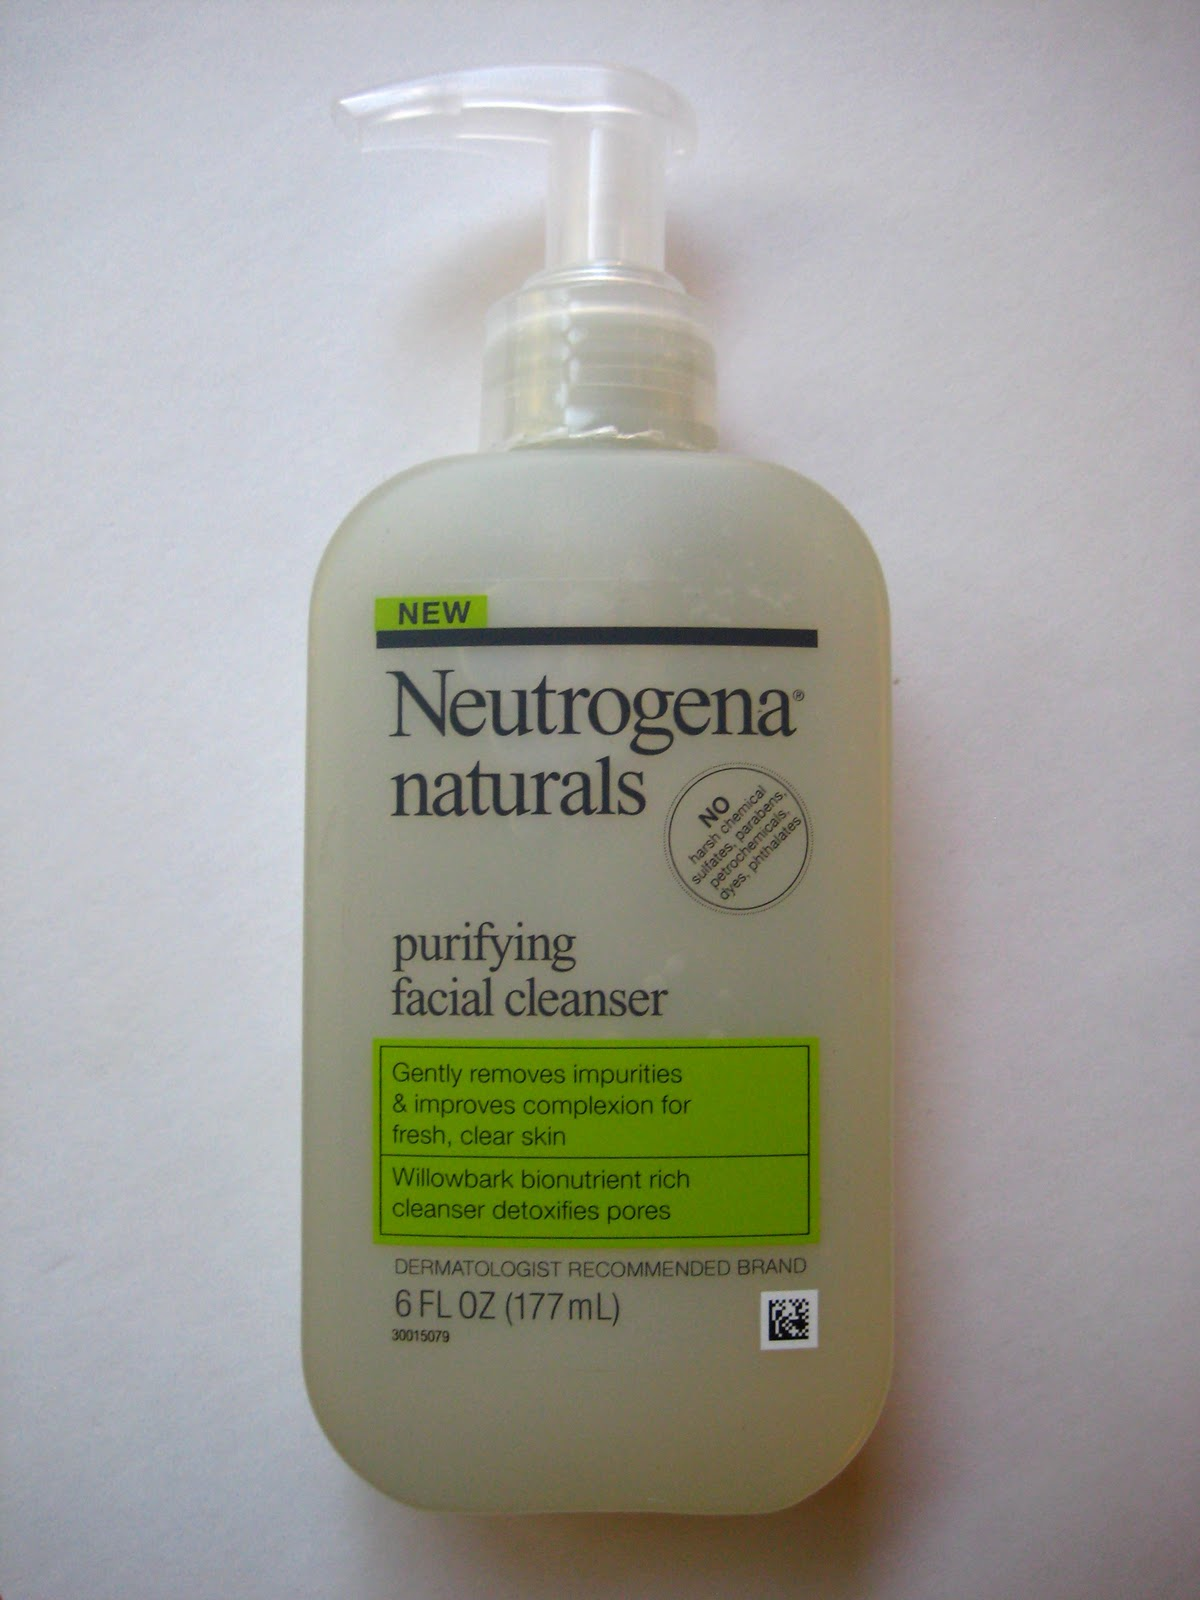 Neutrogena Naturals Makeup Remover How To Use